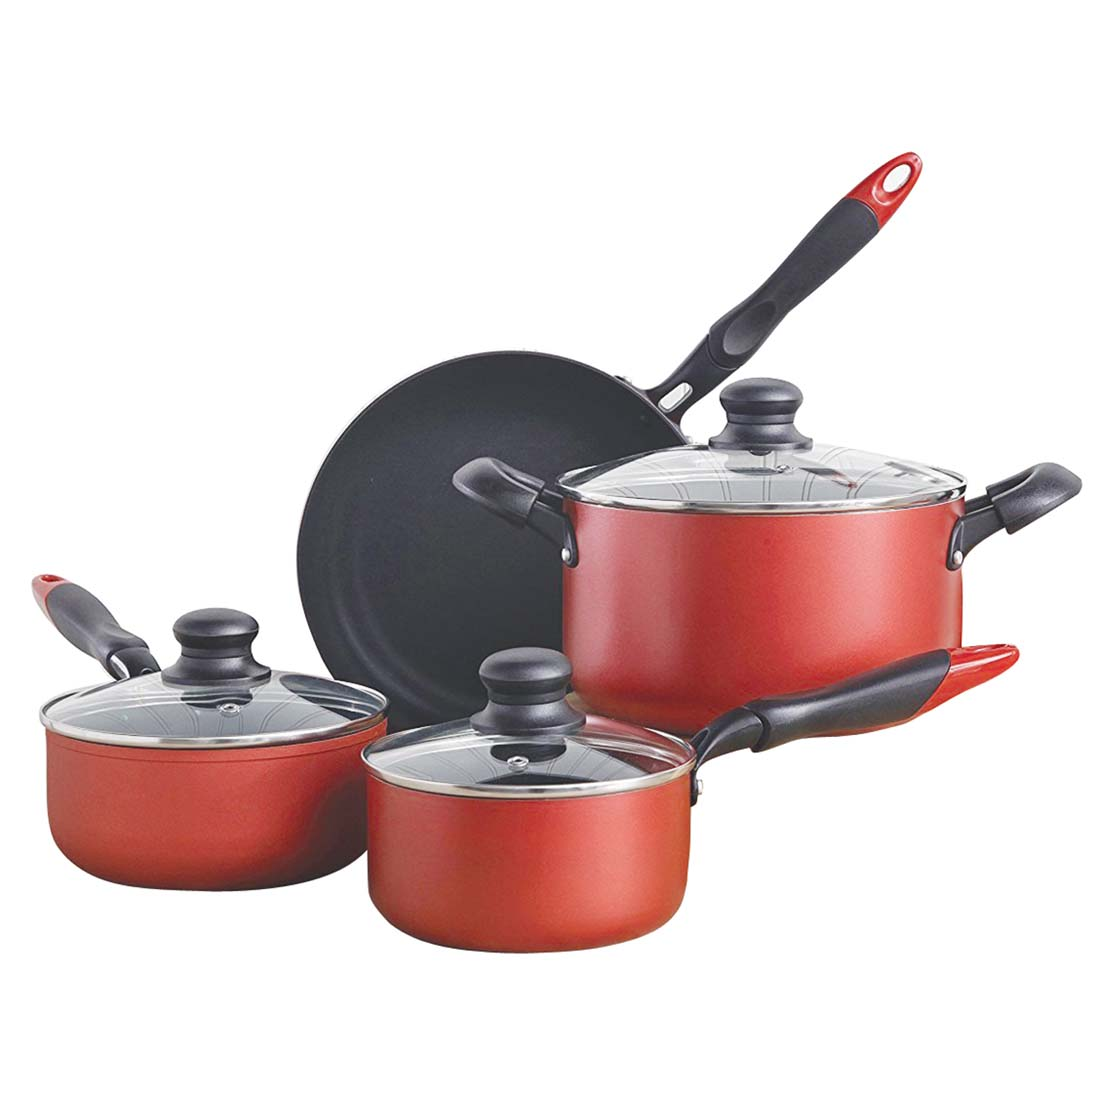 "View ""SUNBEAM"" ANDREO 7PC ALUMINUM COOKWARE SET ***SUPERIOR NON-STICK COATING***METALLIC BRICKTEMPERED GLASS LIDLIGHT WEIGHT BODYGAS ELECTRIC & GLASS STOVETOP SAFE"